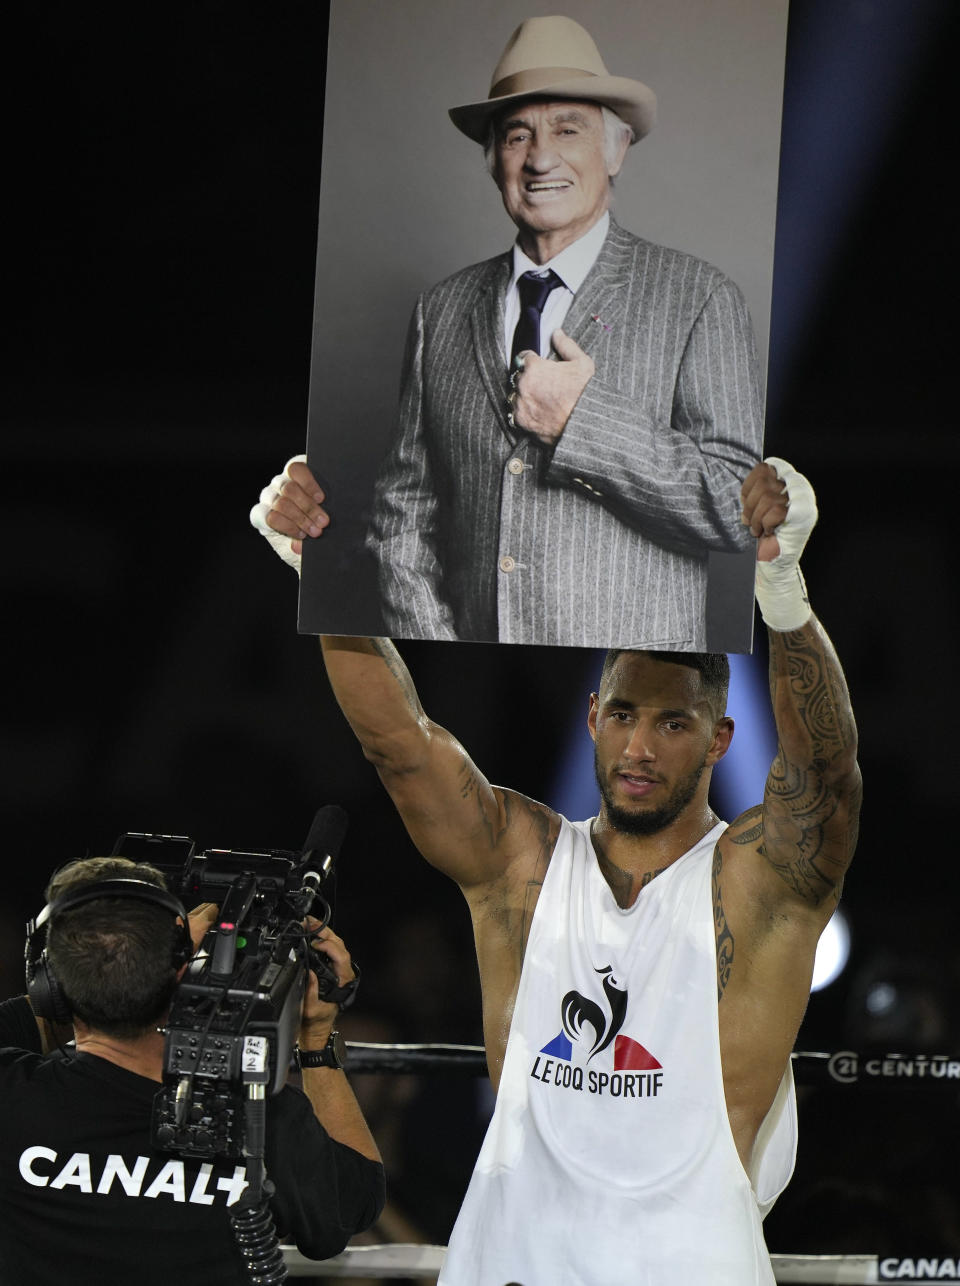 Tony Yoka of France holds up a photo of late French actor Jean-Paul Belmondo after he defeated Croatia's Petar Milas in a heavyweight boxing fight on the central court Philippe Chatrier at the Roland Garros tennis stadium, in Paris, Friday, Sept. 10, 2021. Belmondo a boxing enthusiast and former amateur boxer died earlier this week aged 88 (AP Photo/Francois Mori)